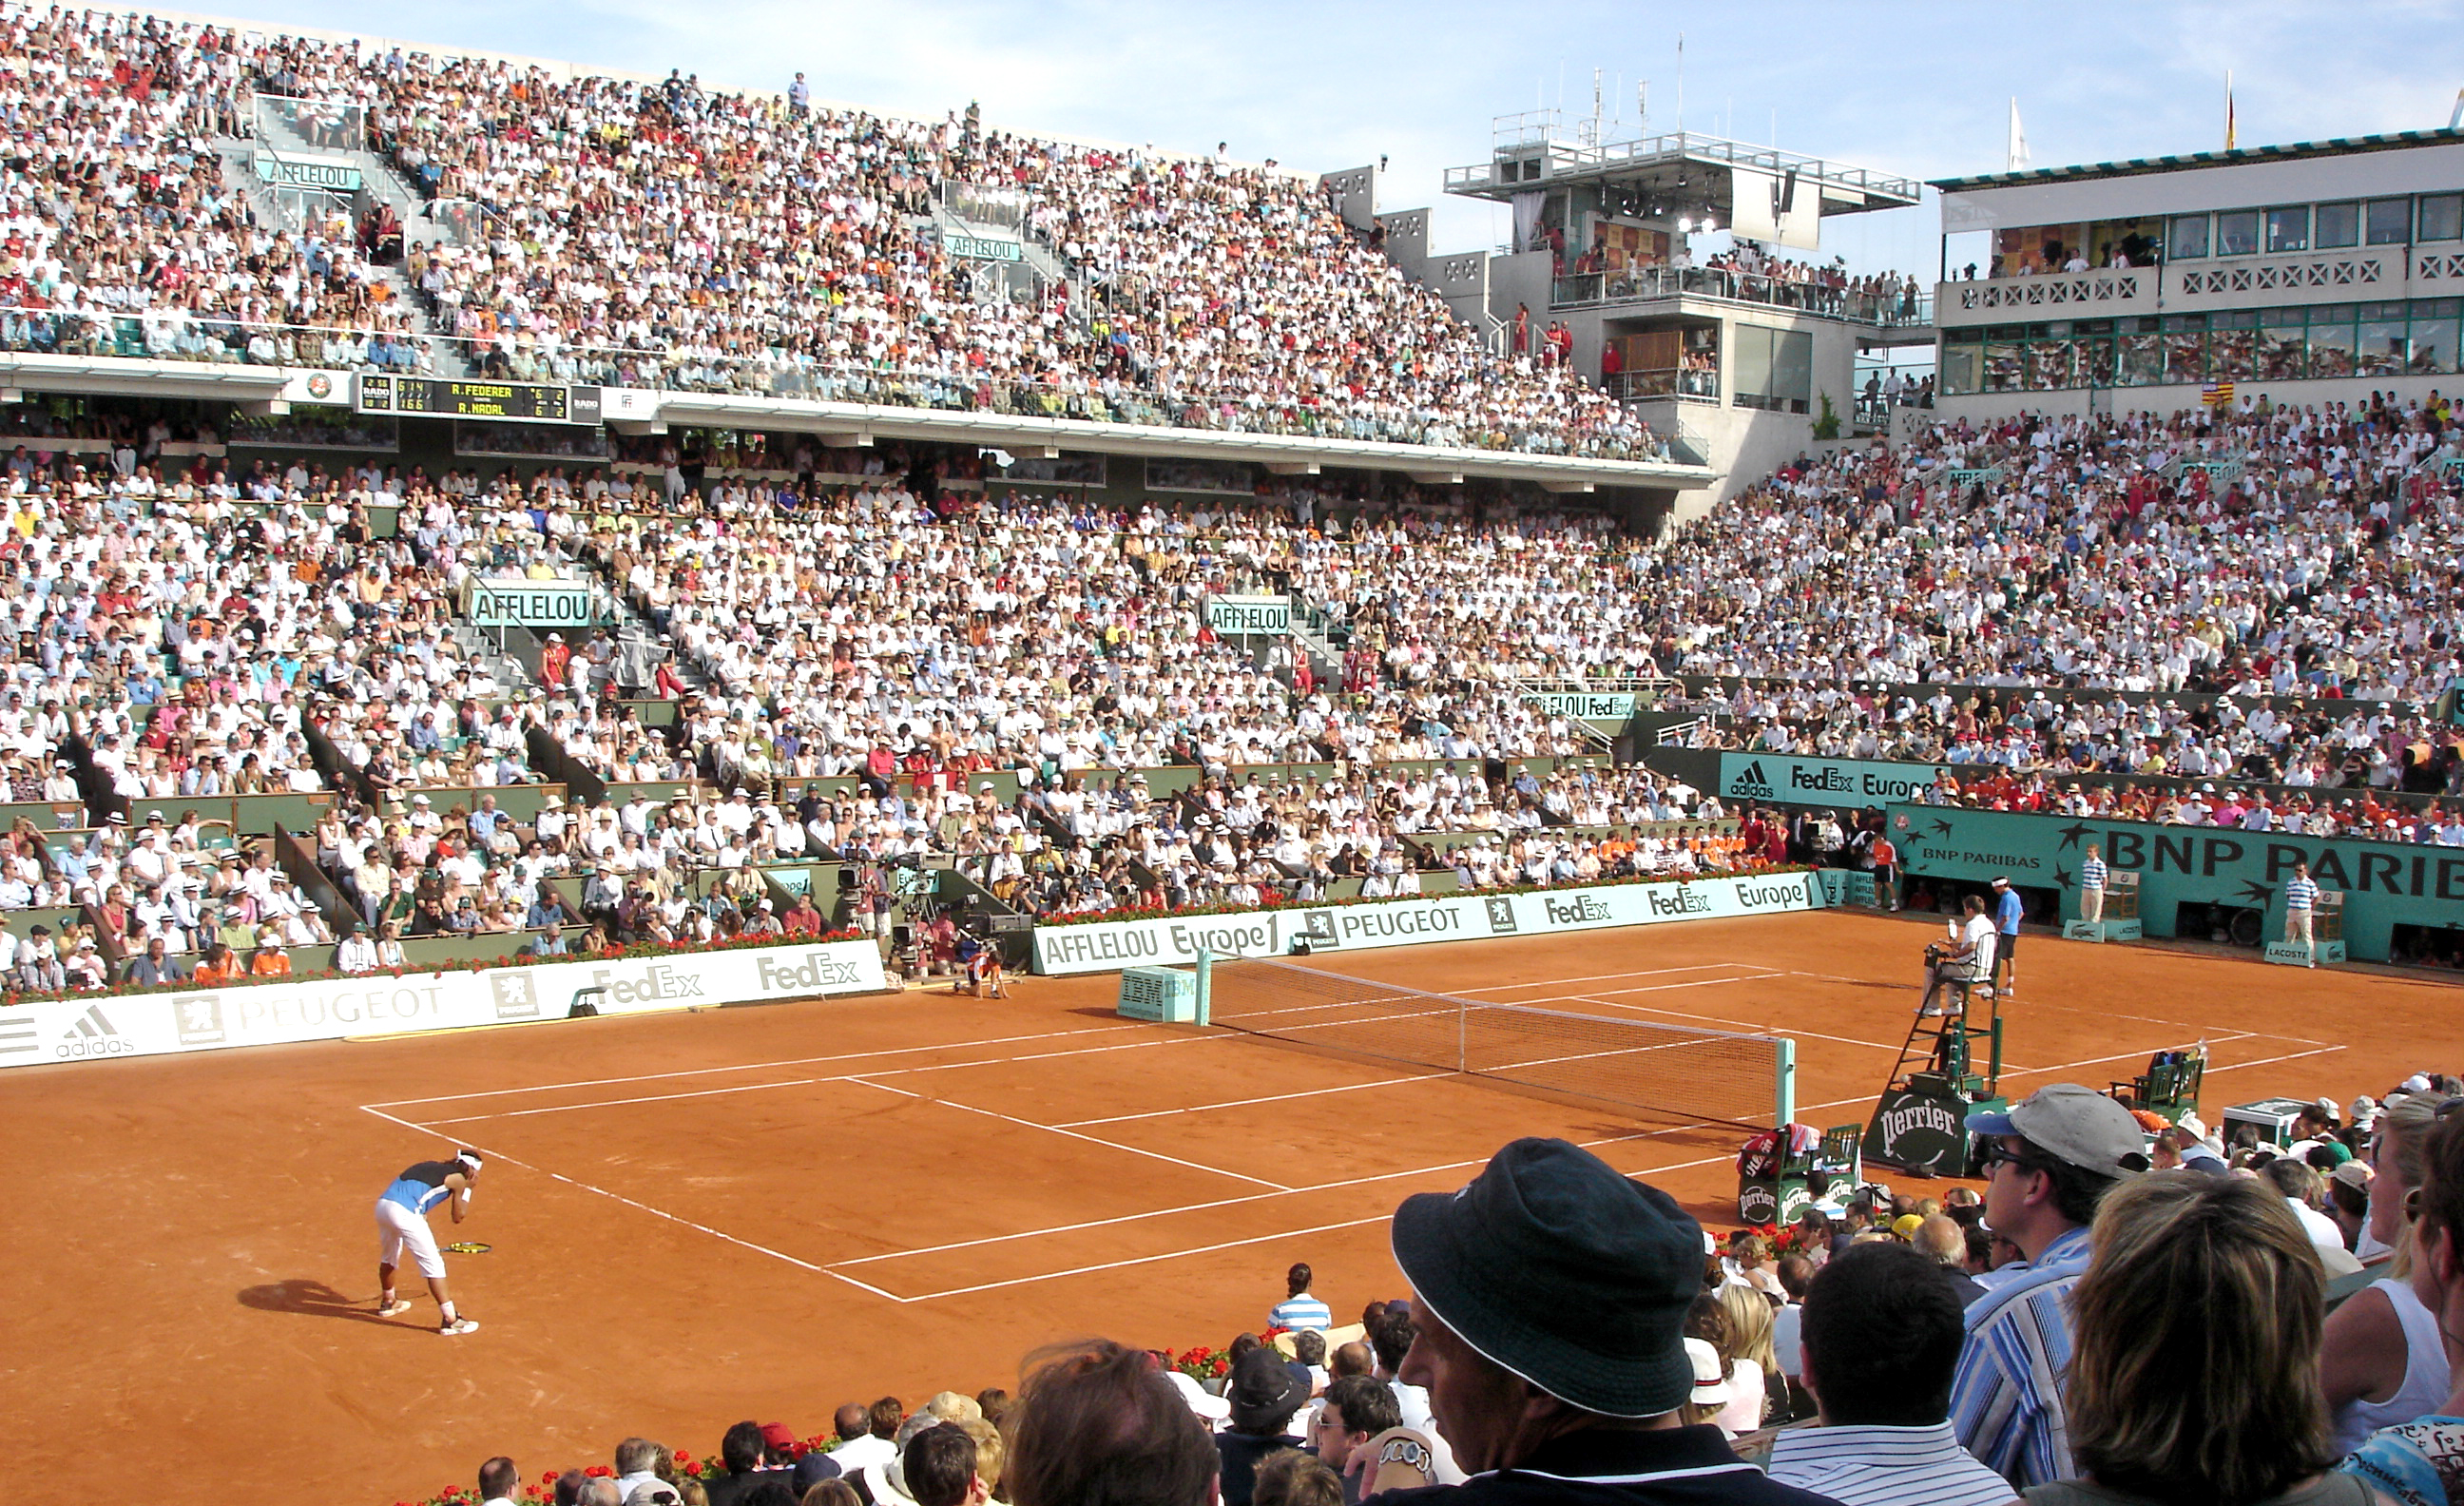 French Open Pictures & Wallpapers